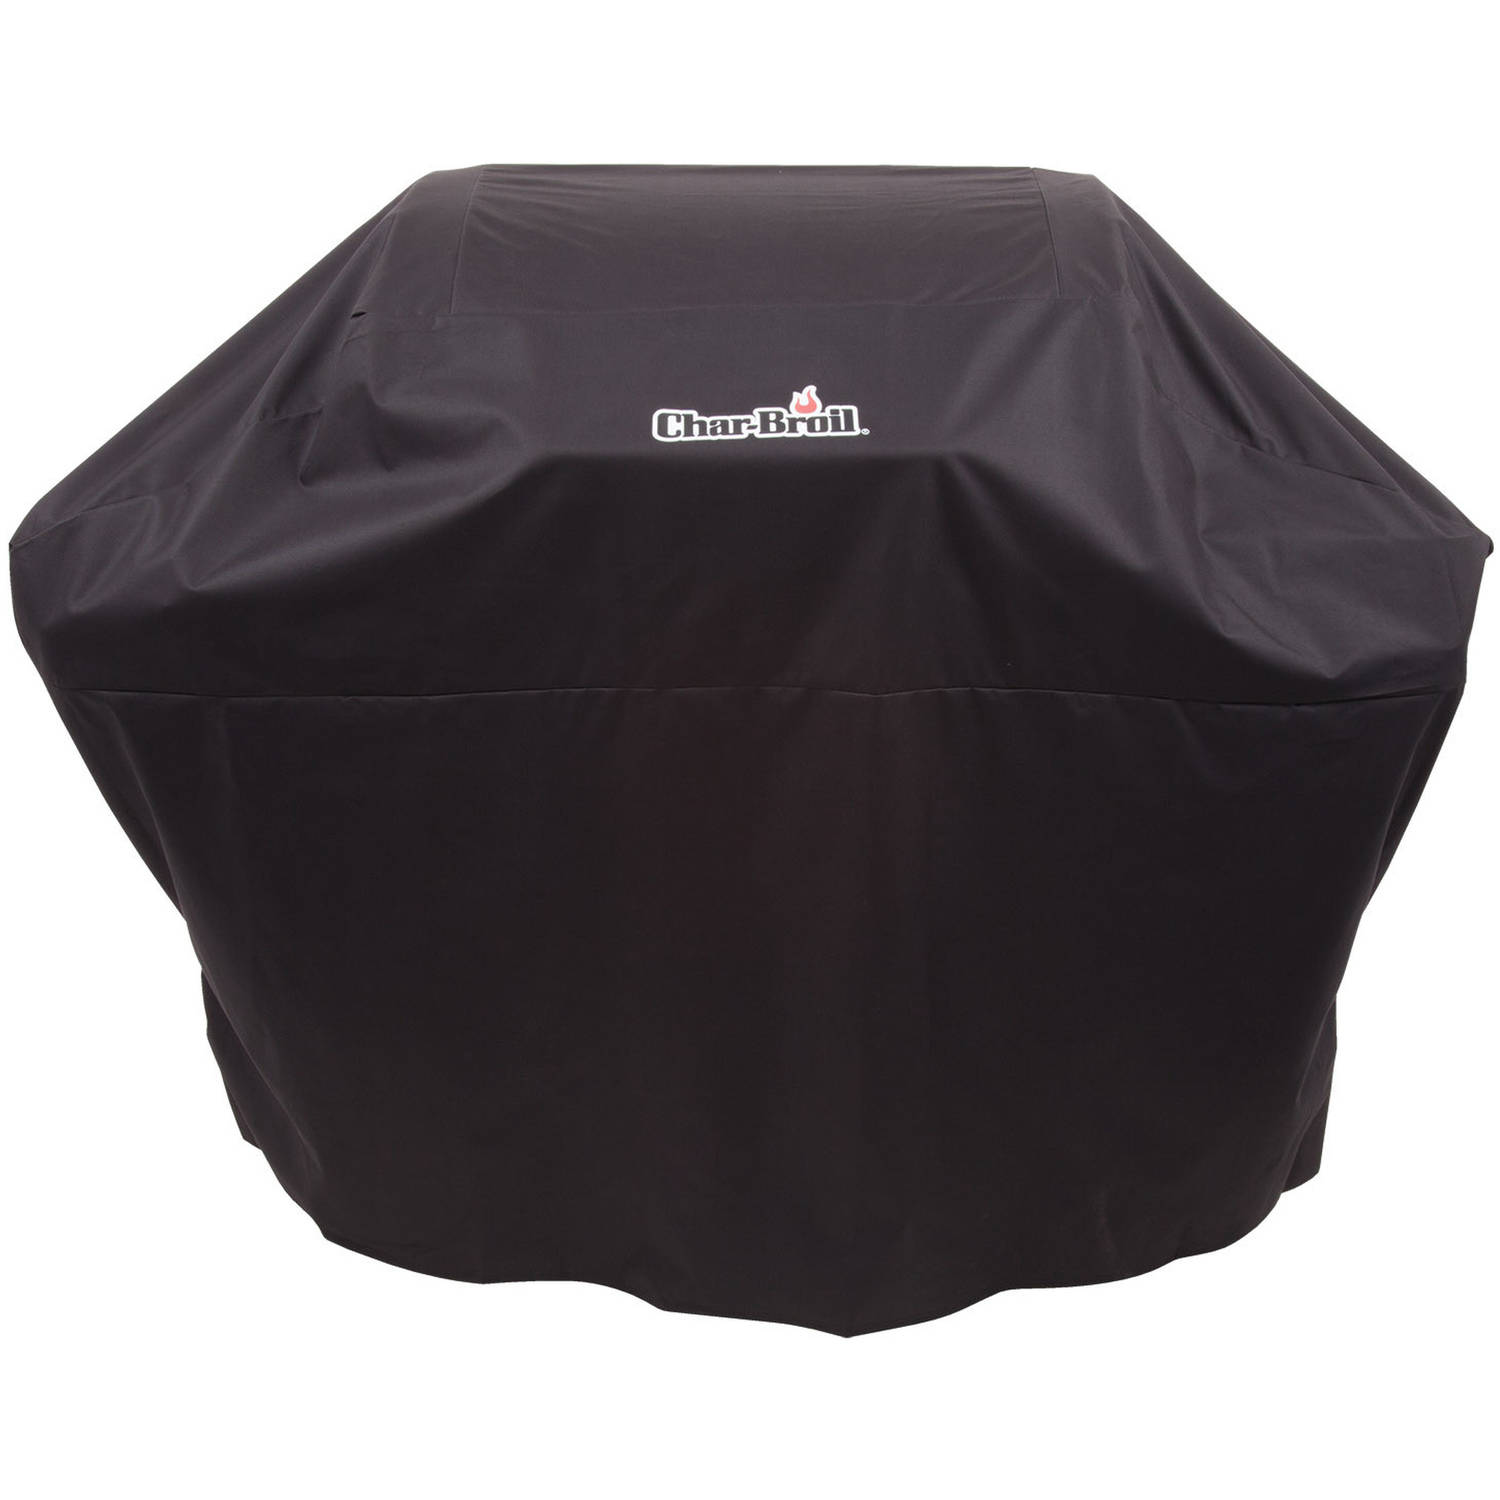 char broil grill cover Char Broil 3  or 4 Burner All Season Grill Cover   Walmart.com char broil grill cover